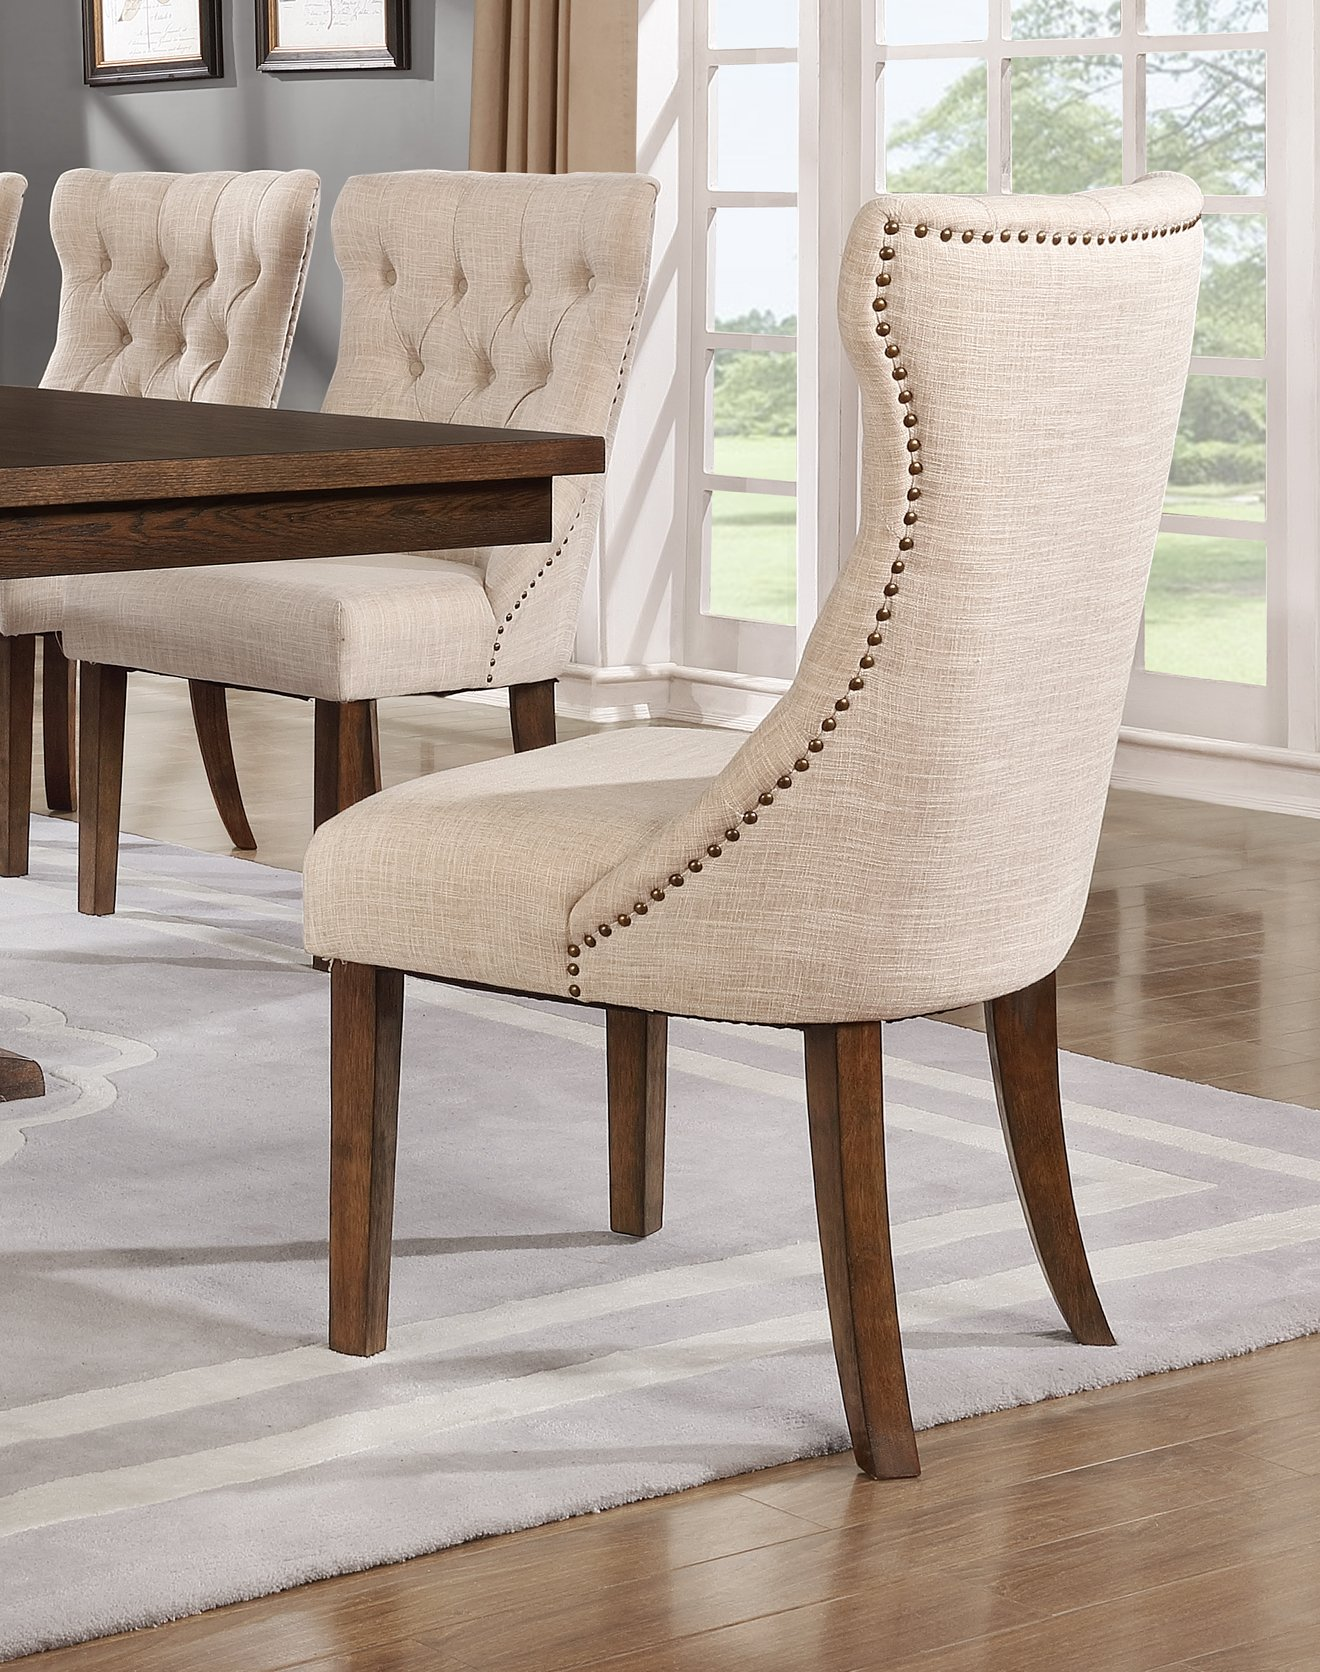 Best Quality Furniture Upholstered Dining Chairs by Best Quality